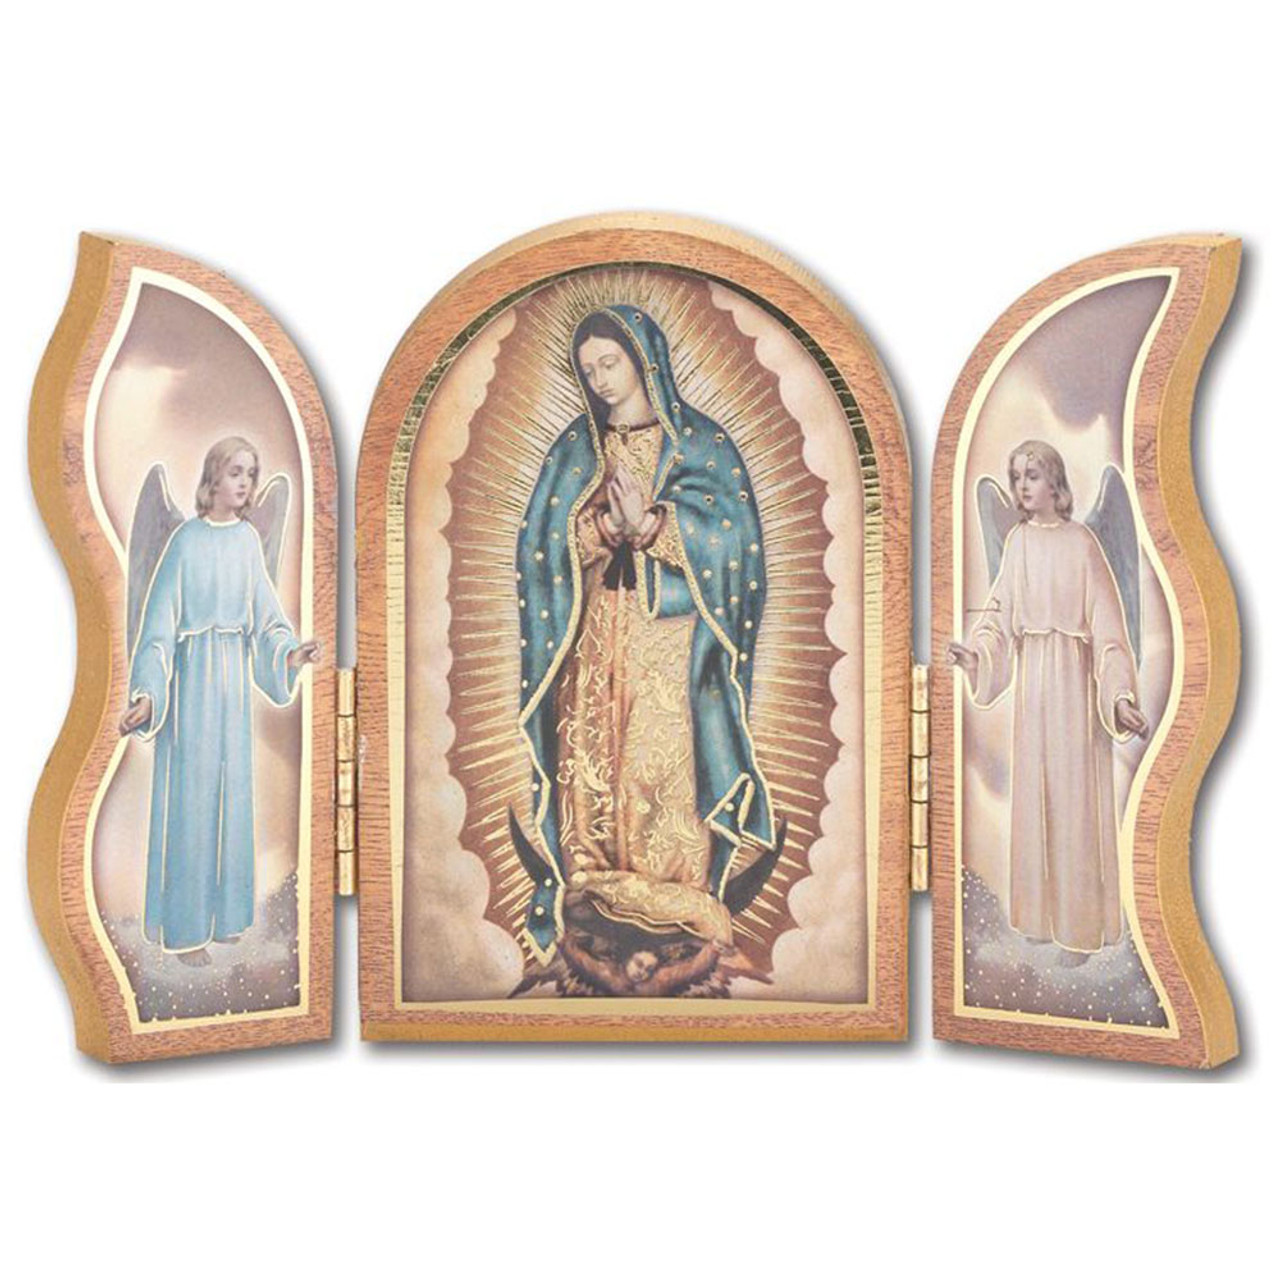 Our Lady of Guadalupe 4 X 5 Inch Icon Triptych